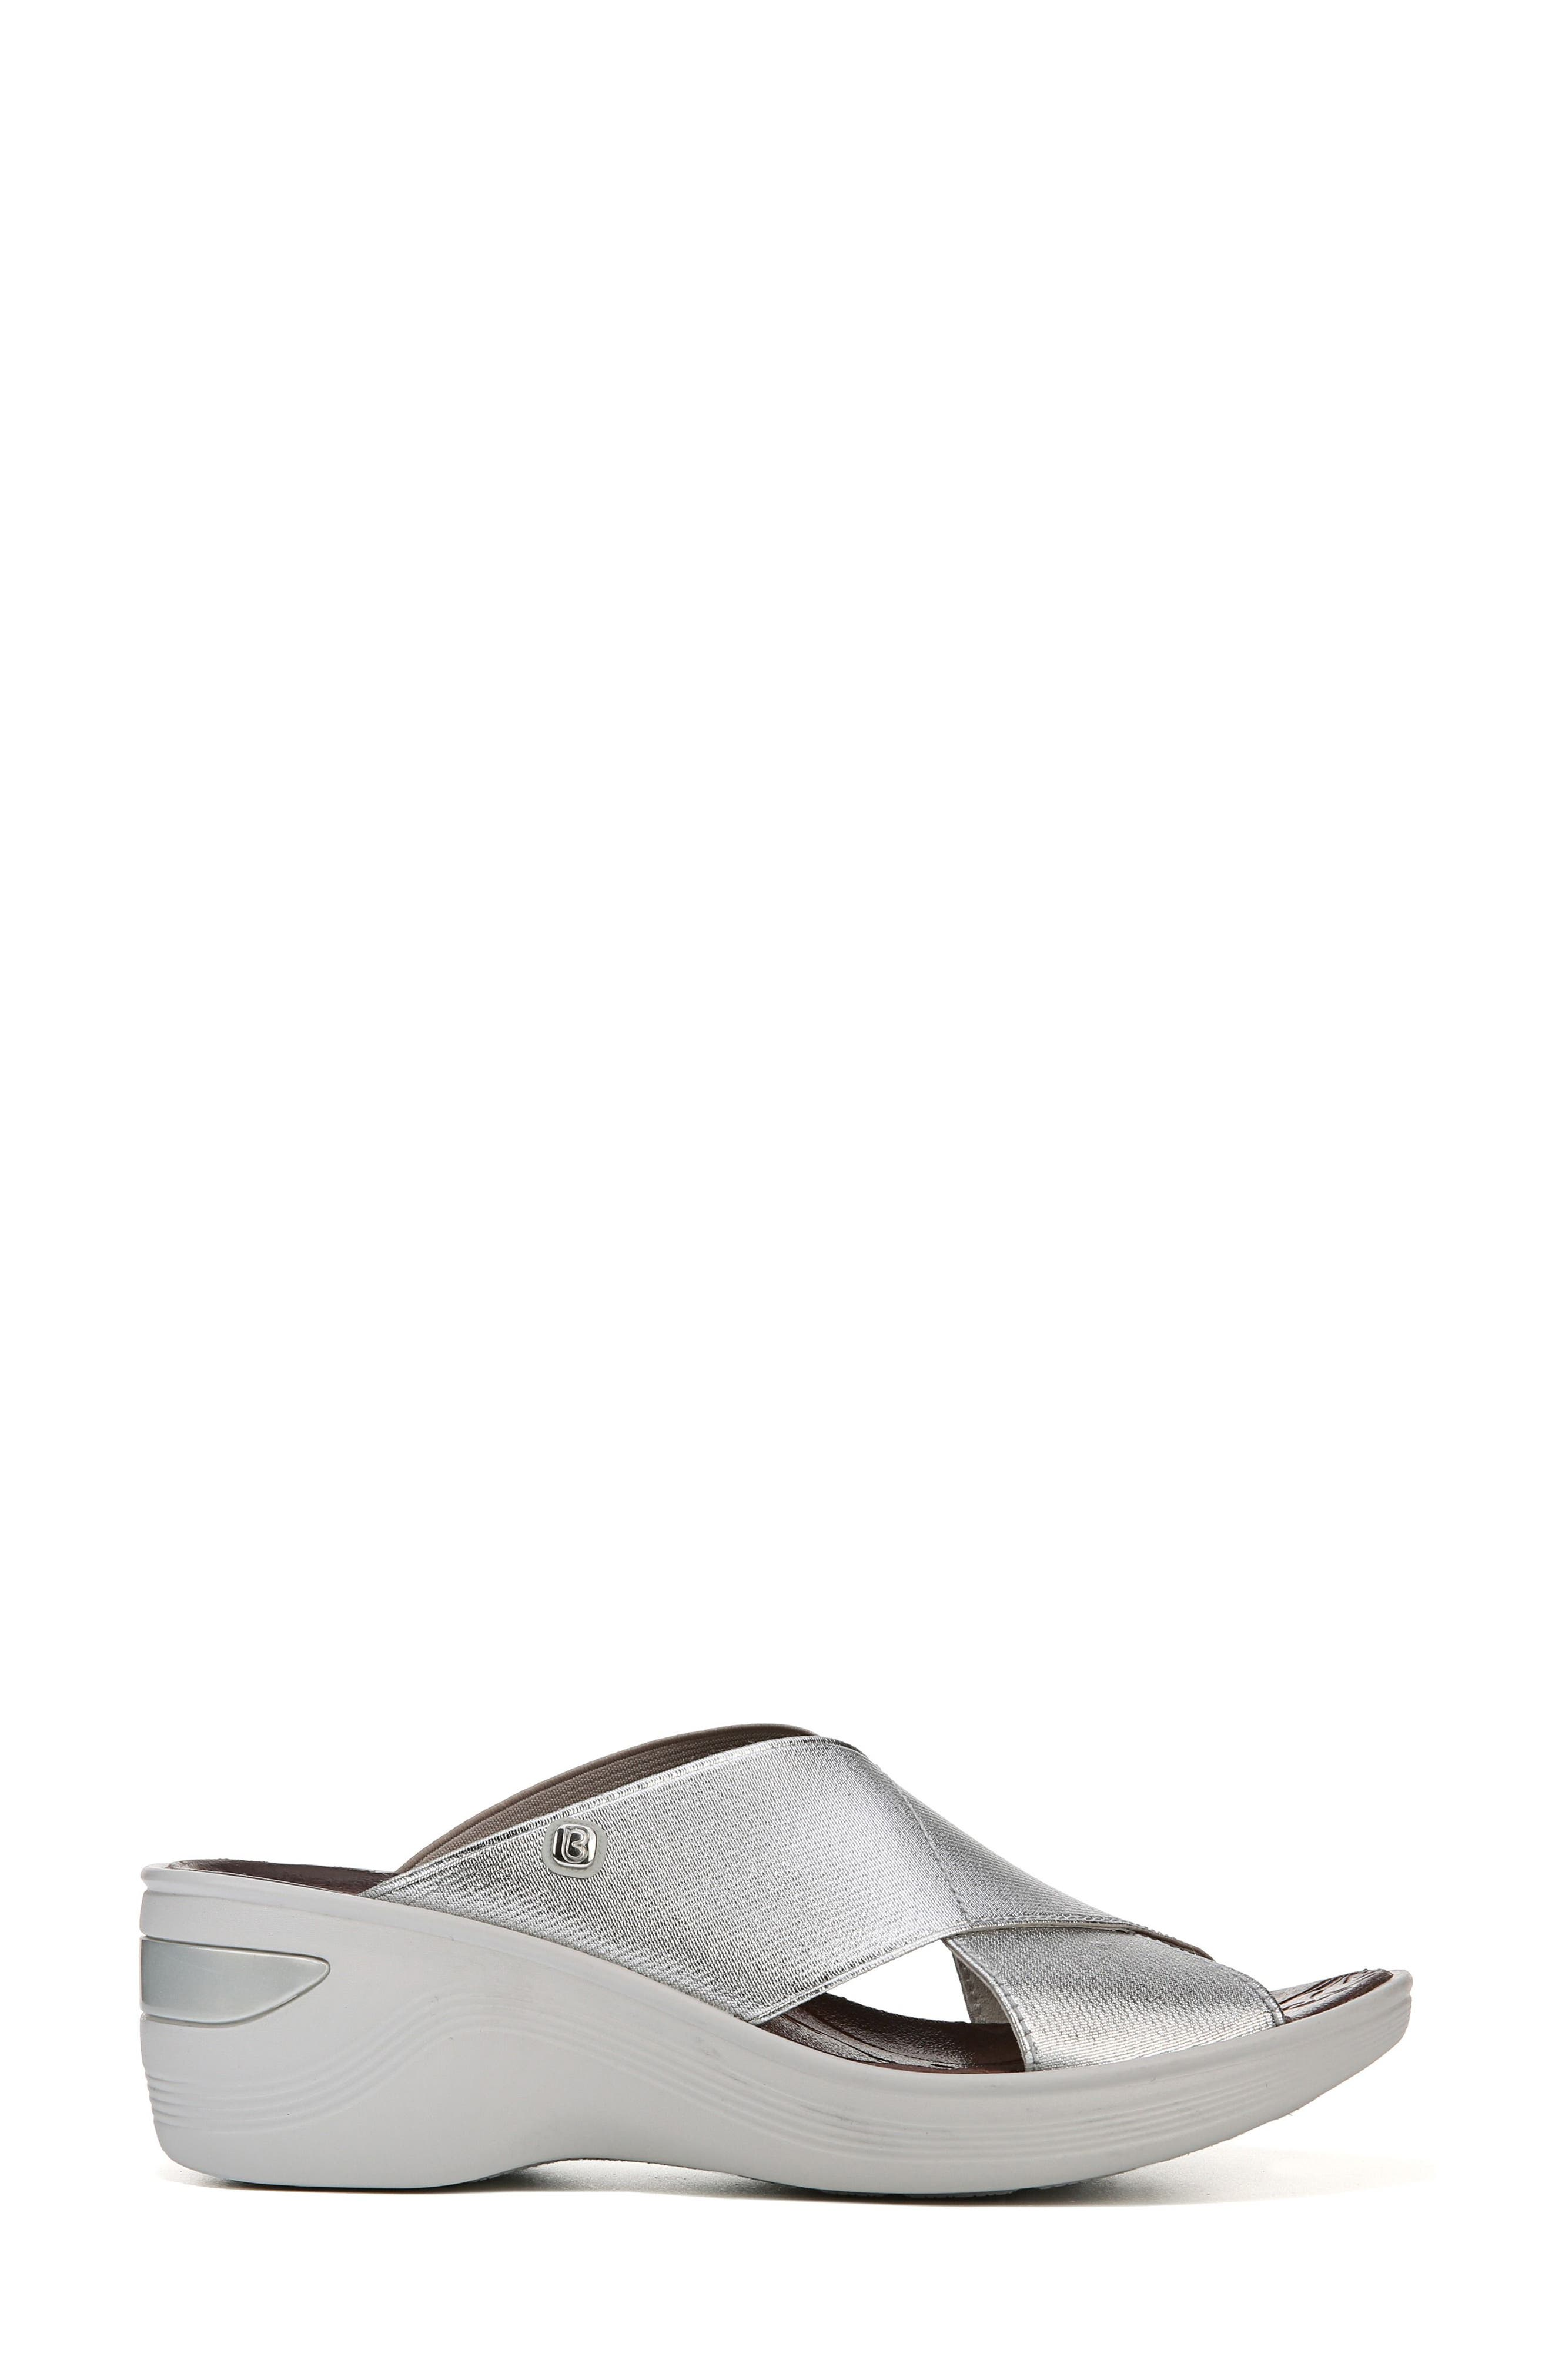 'Desire' Wedge Sandal,                             Alternate thumbnail 3, color,                             SILVER METALLIC